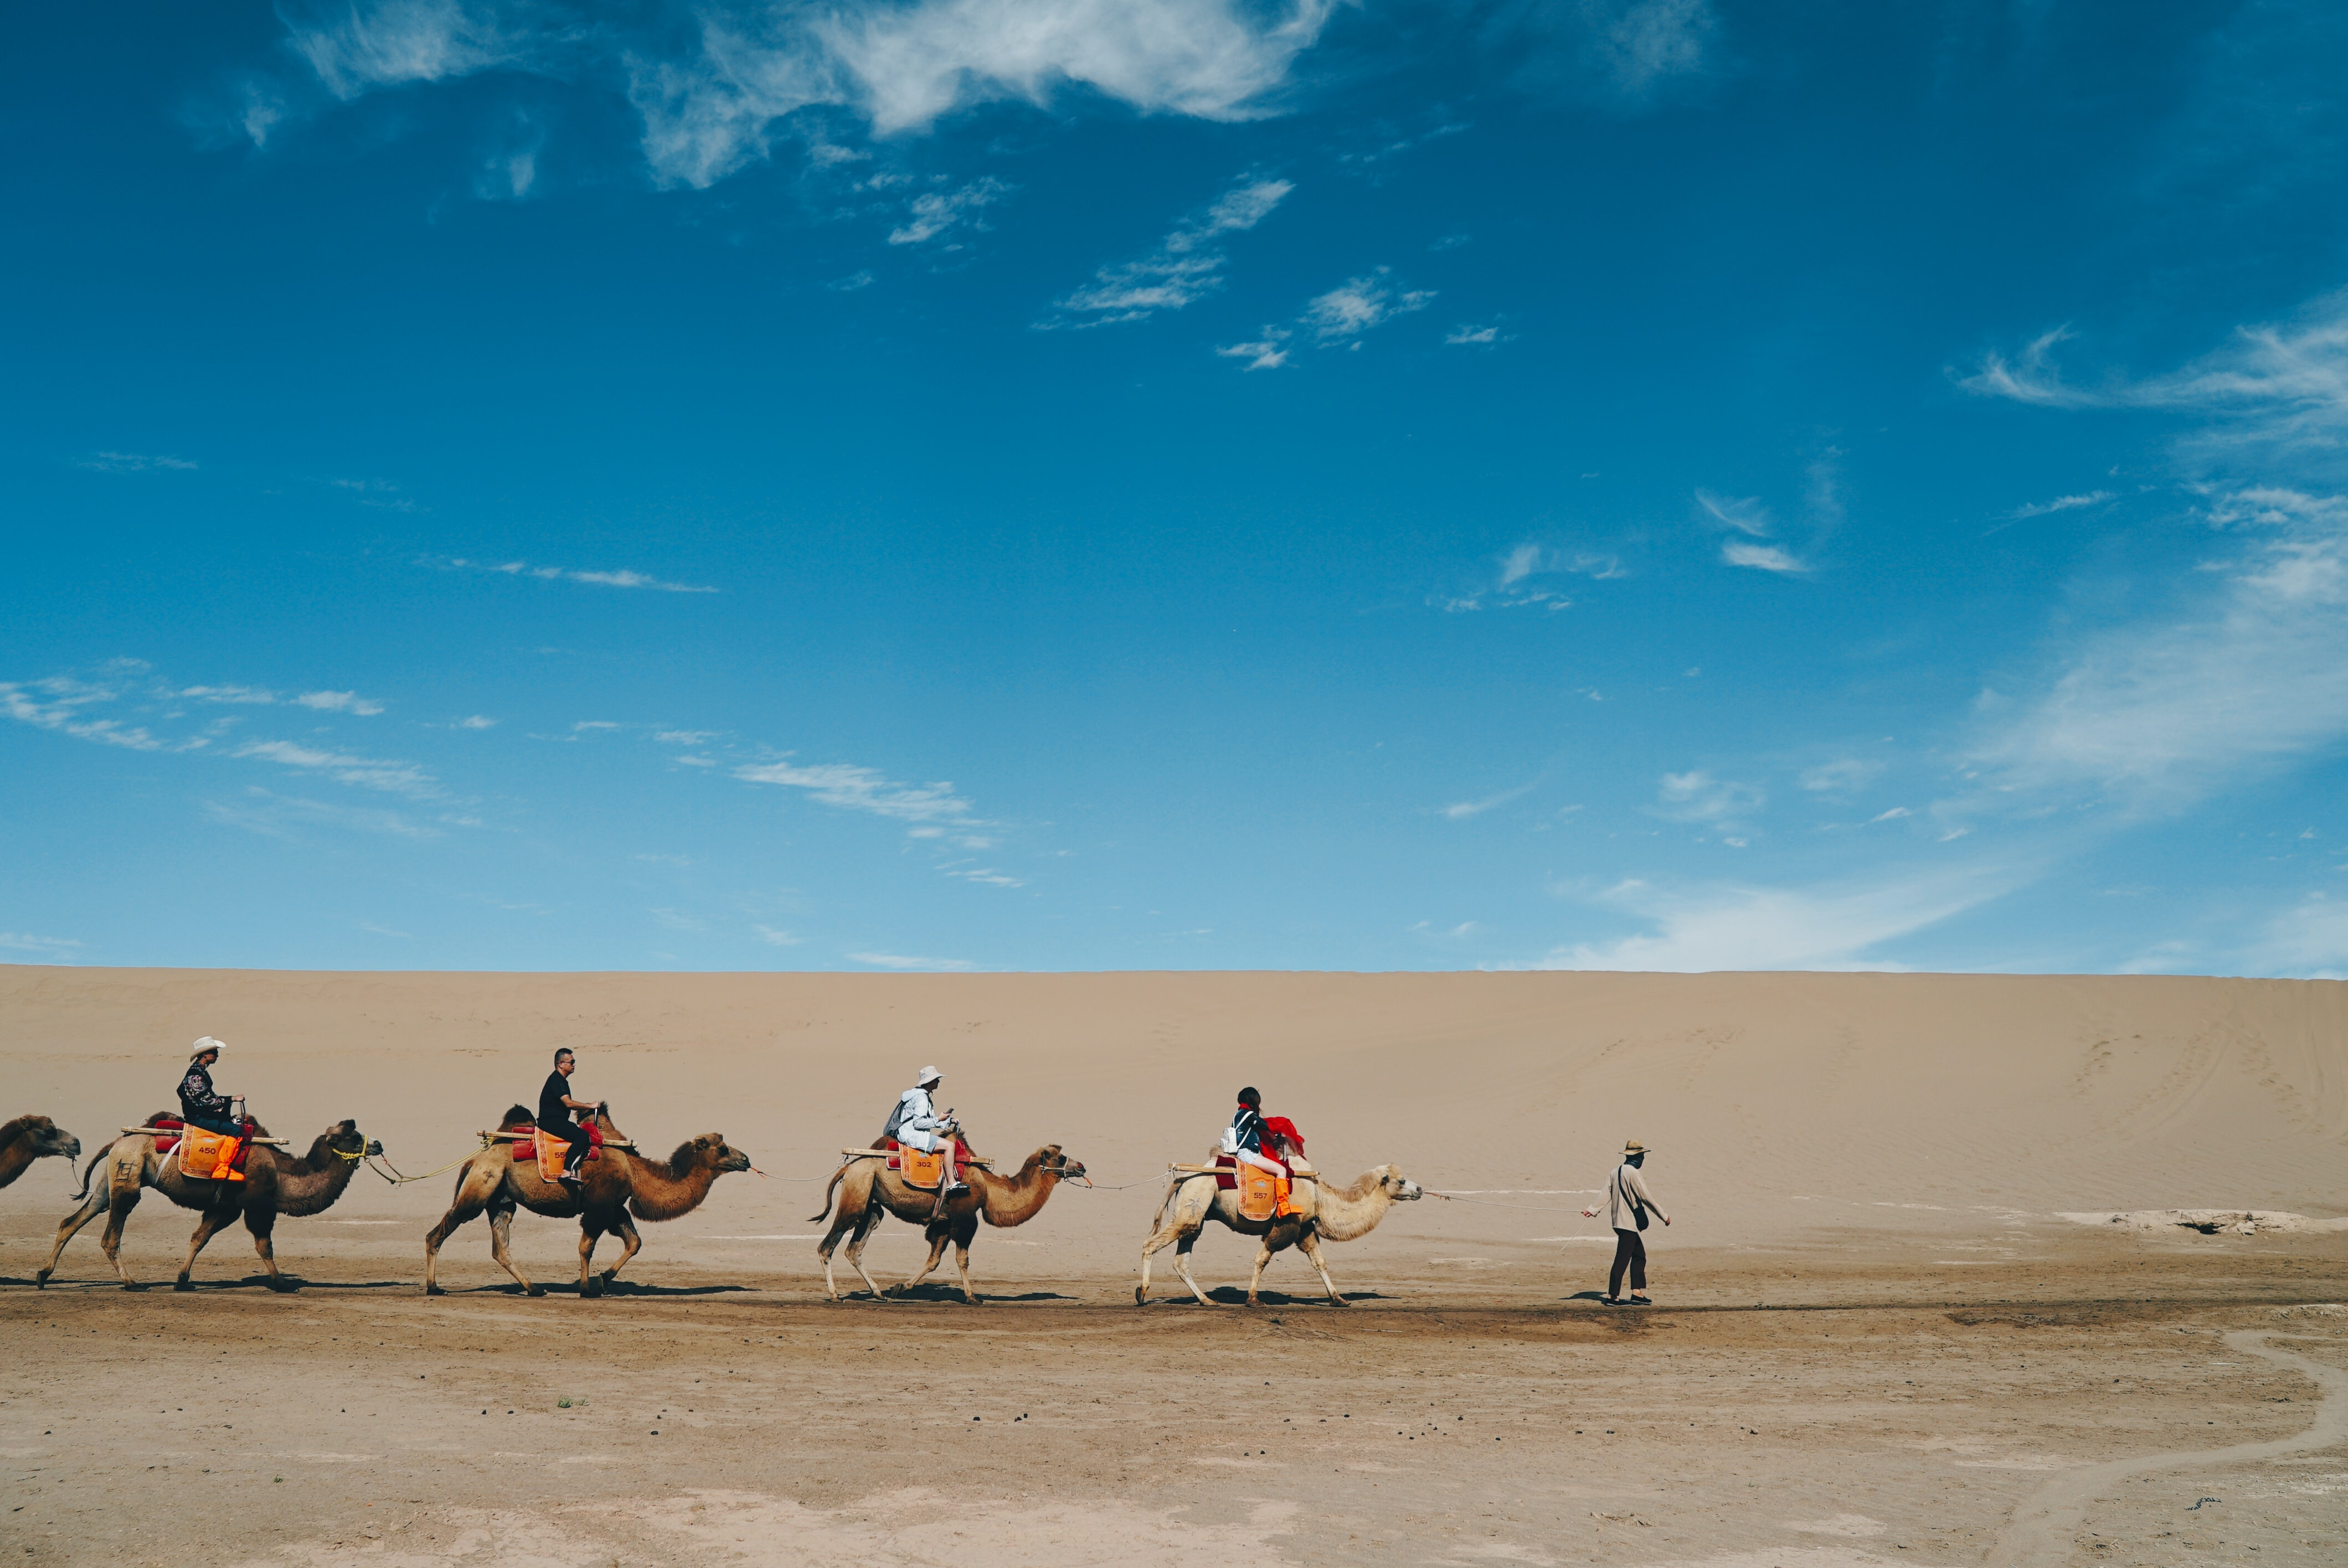 group of people riding on a camel